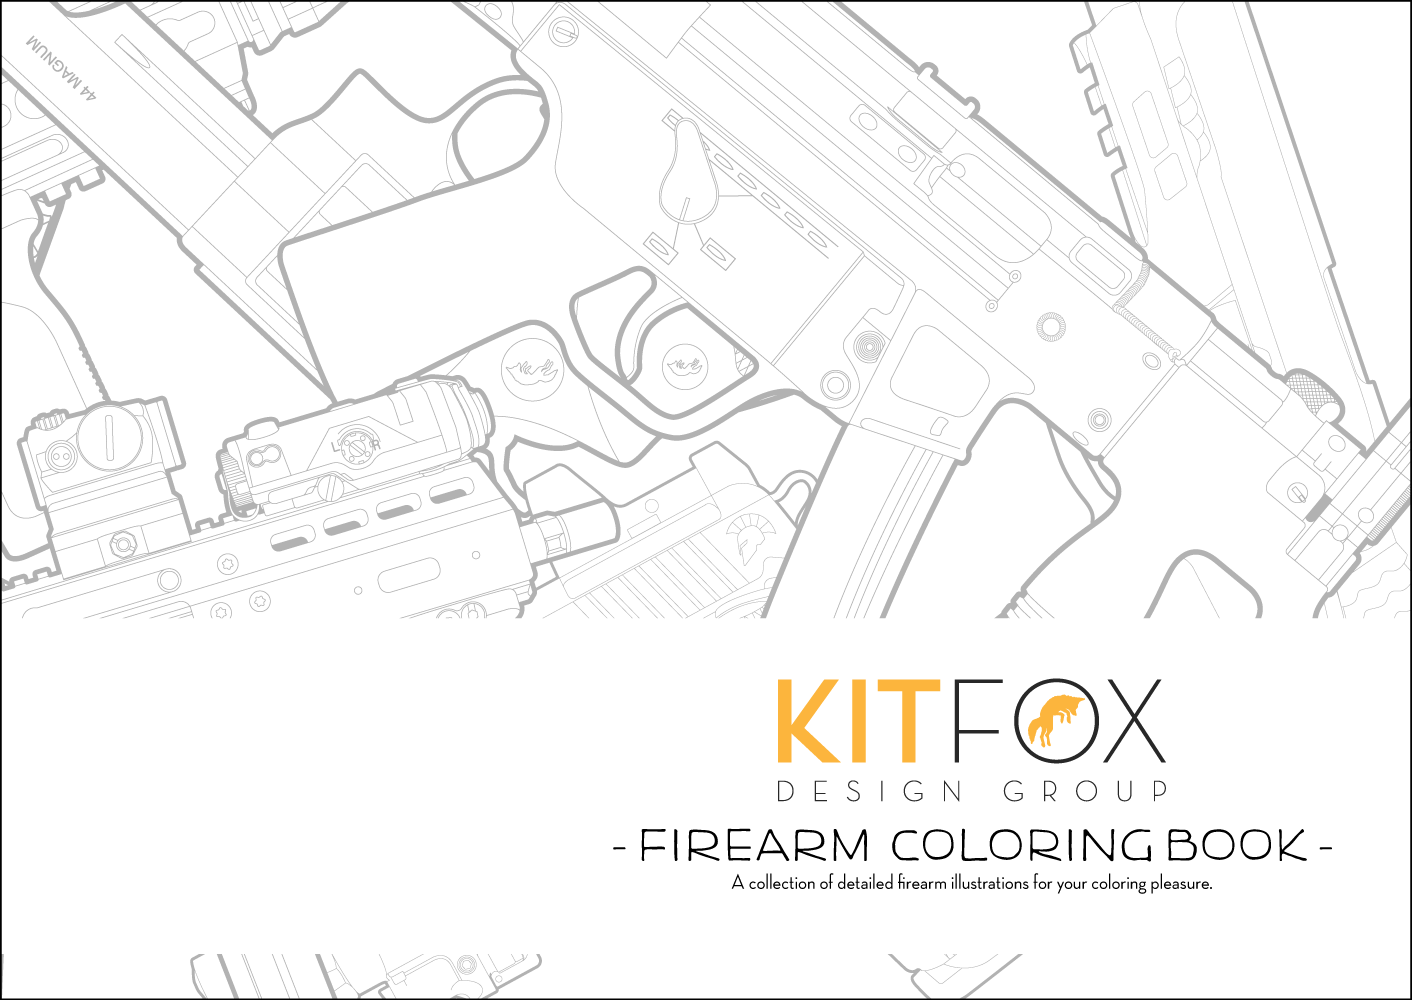 Coloring Books - Kitfox Design Group